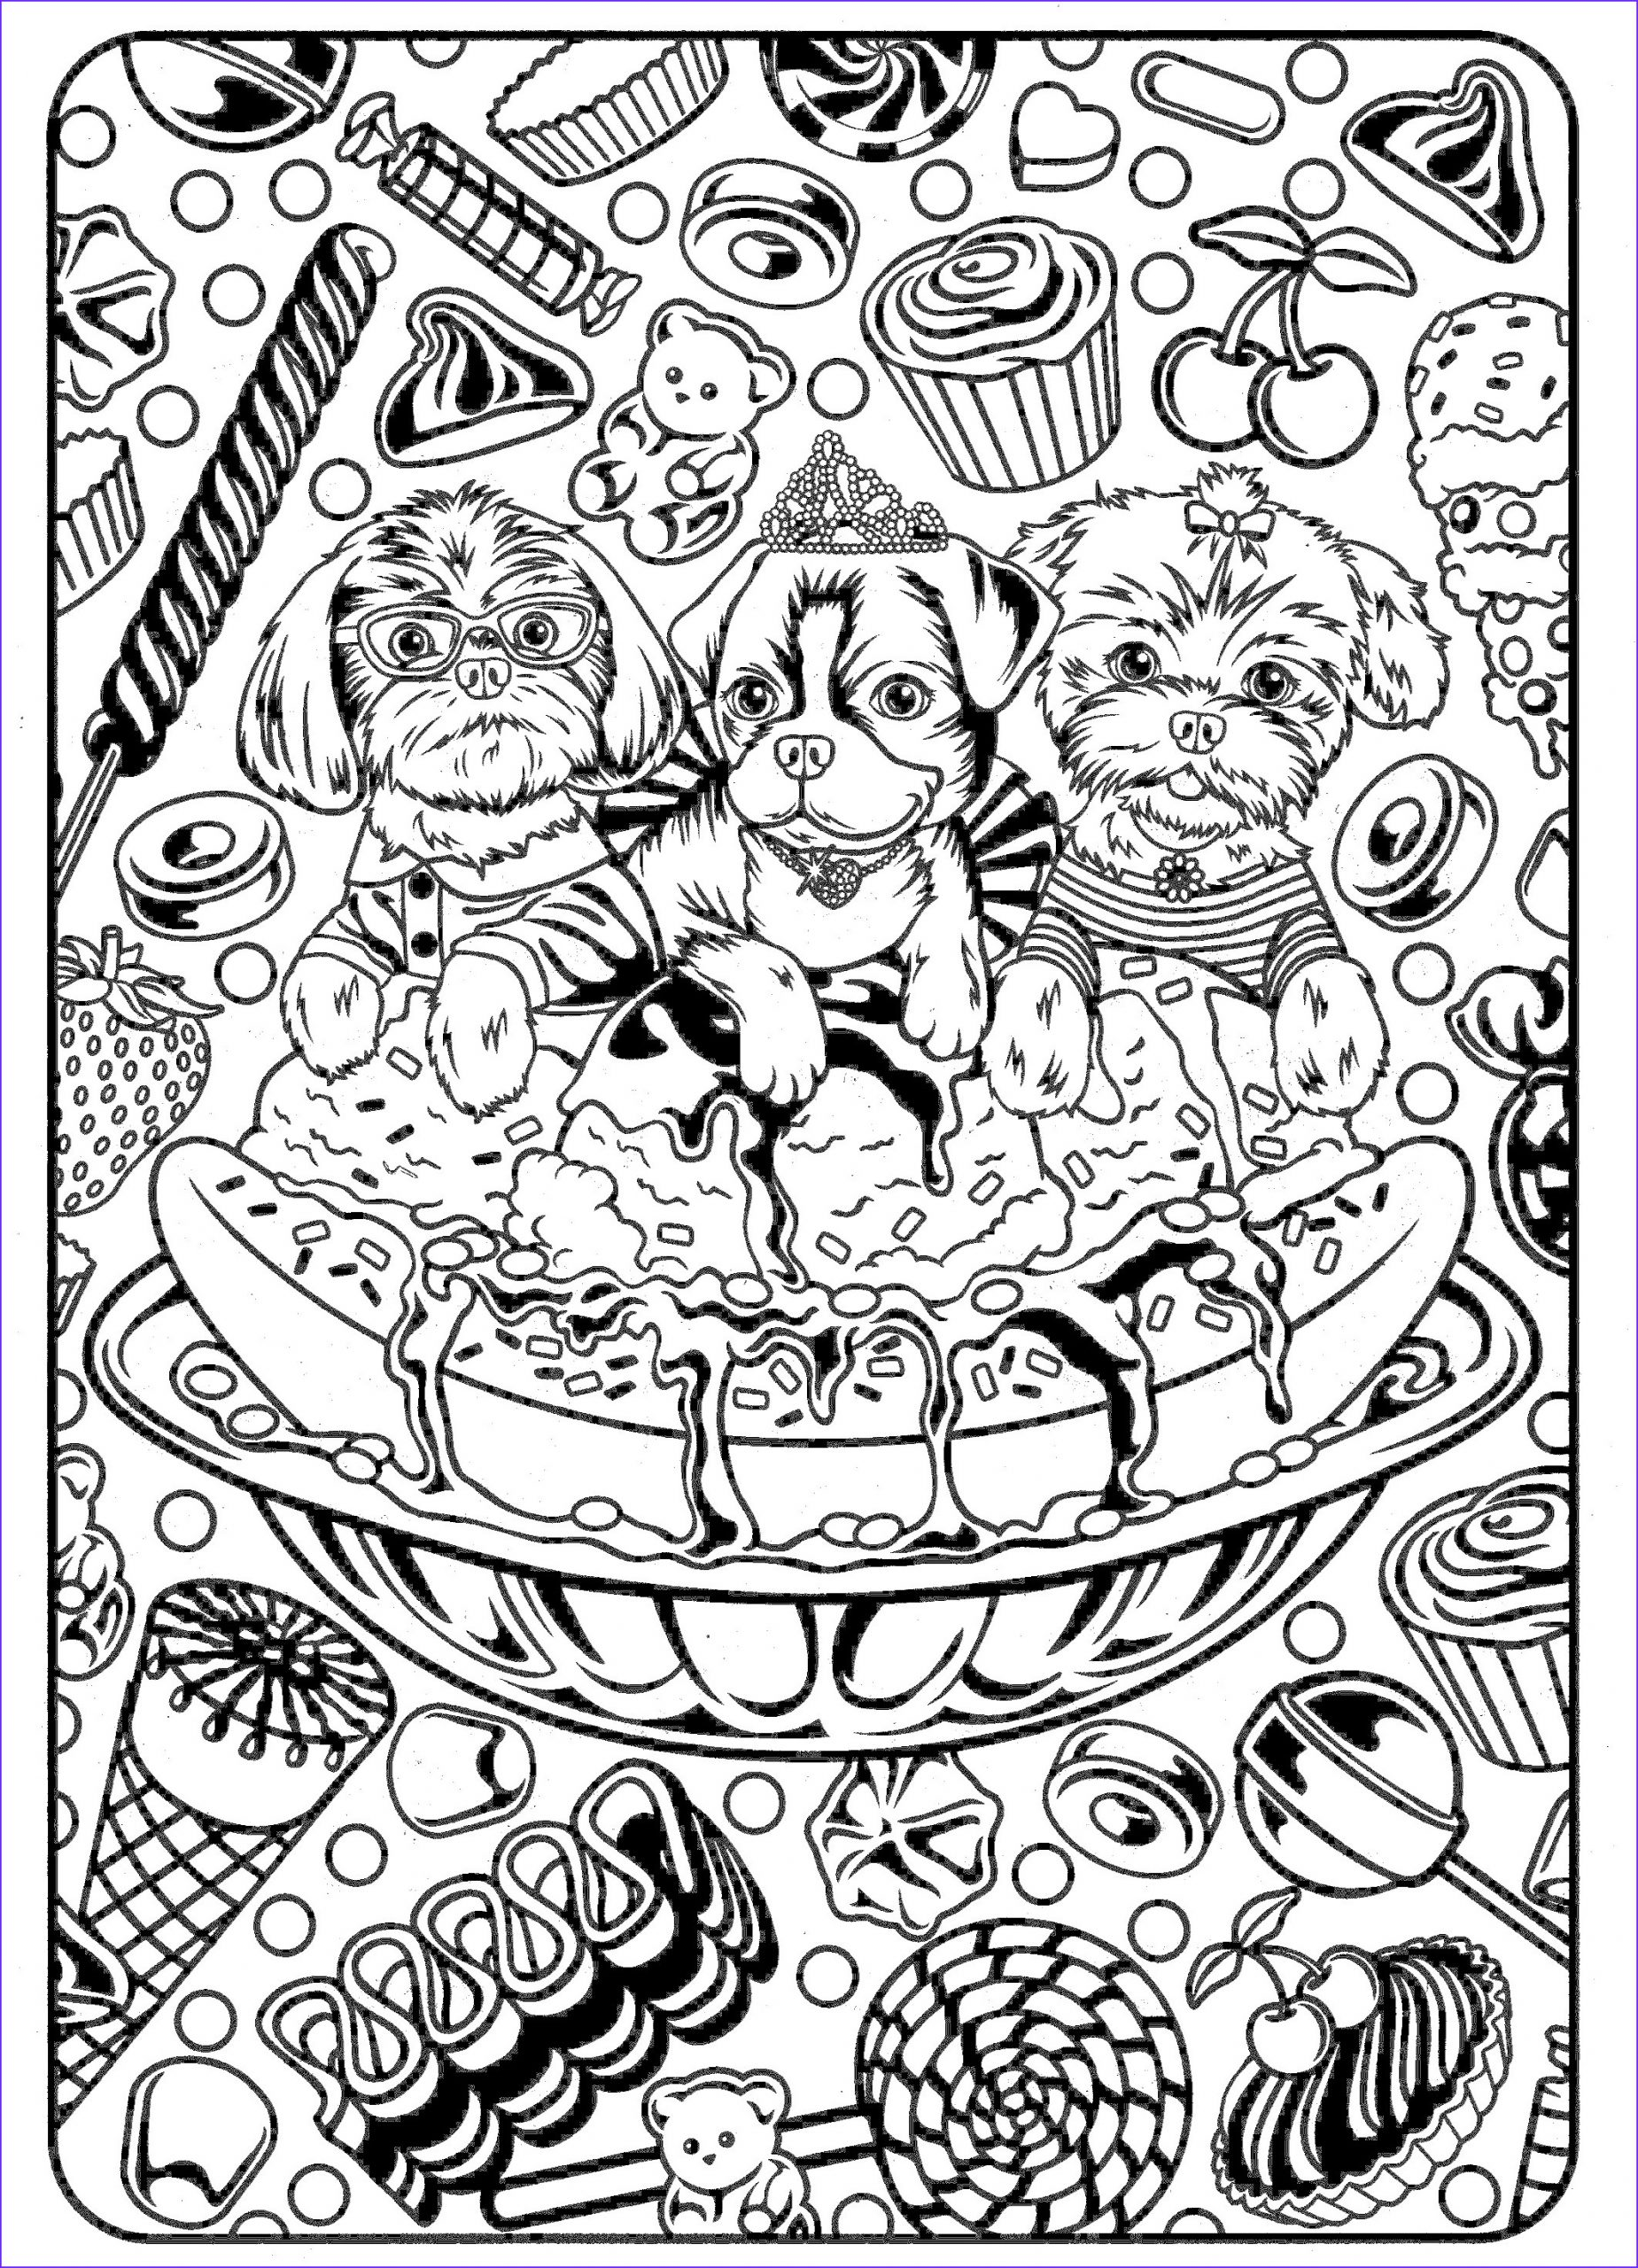 Coloring Page Children Luxury Image Cute Coloring Pages Best Coloring Pages for Kids